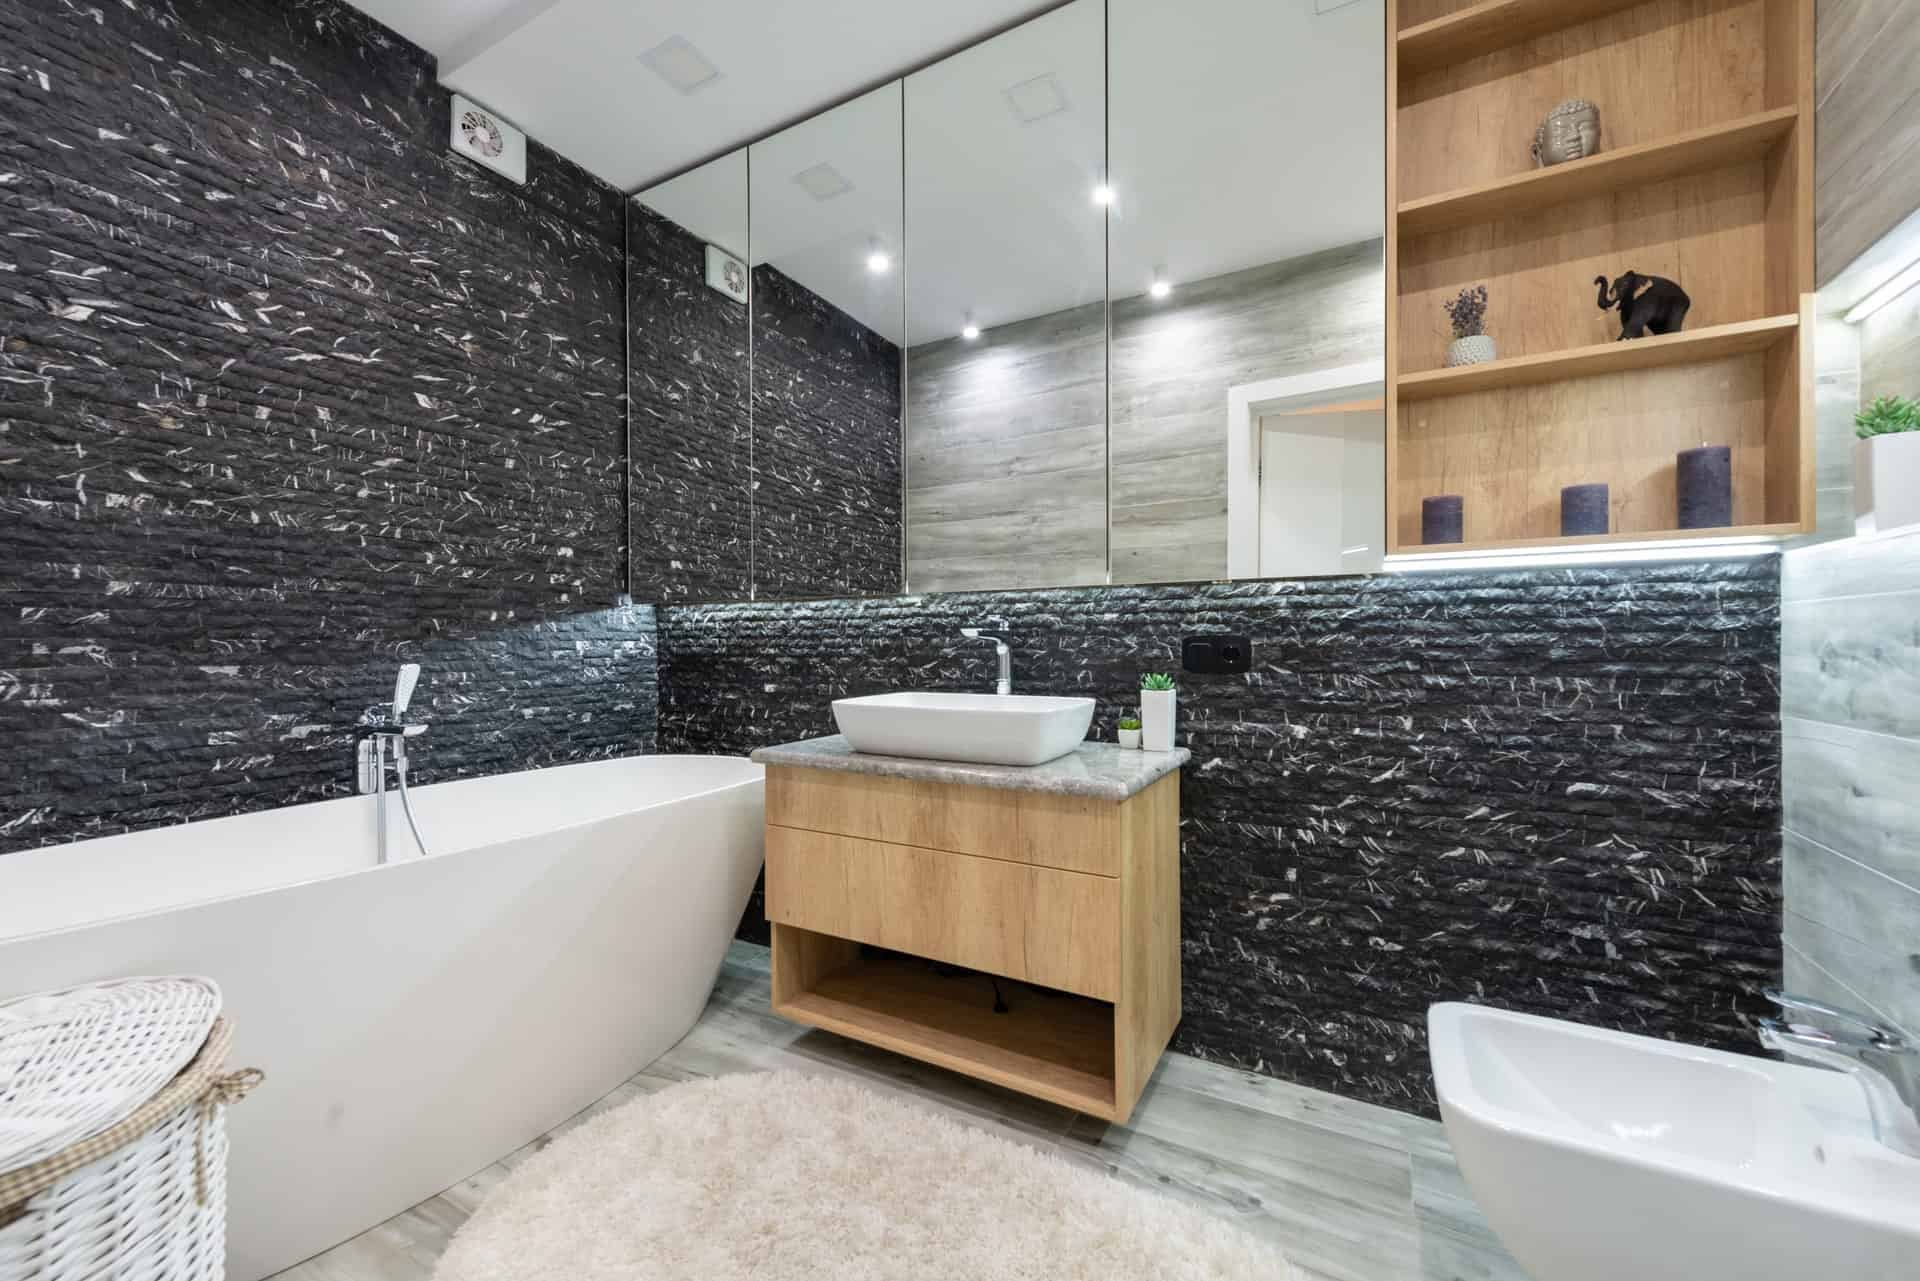 How Much It Would Cost To Remodel a Bathroom?